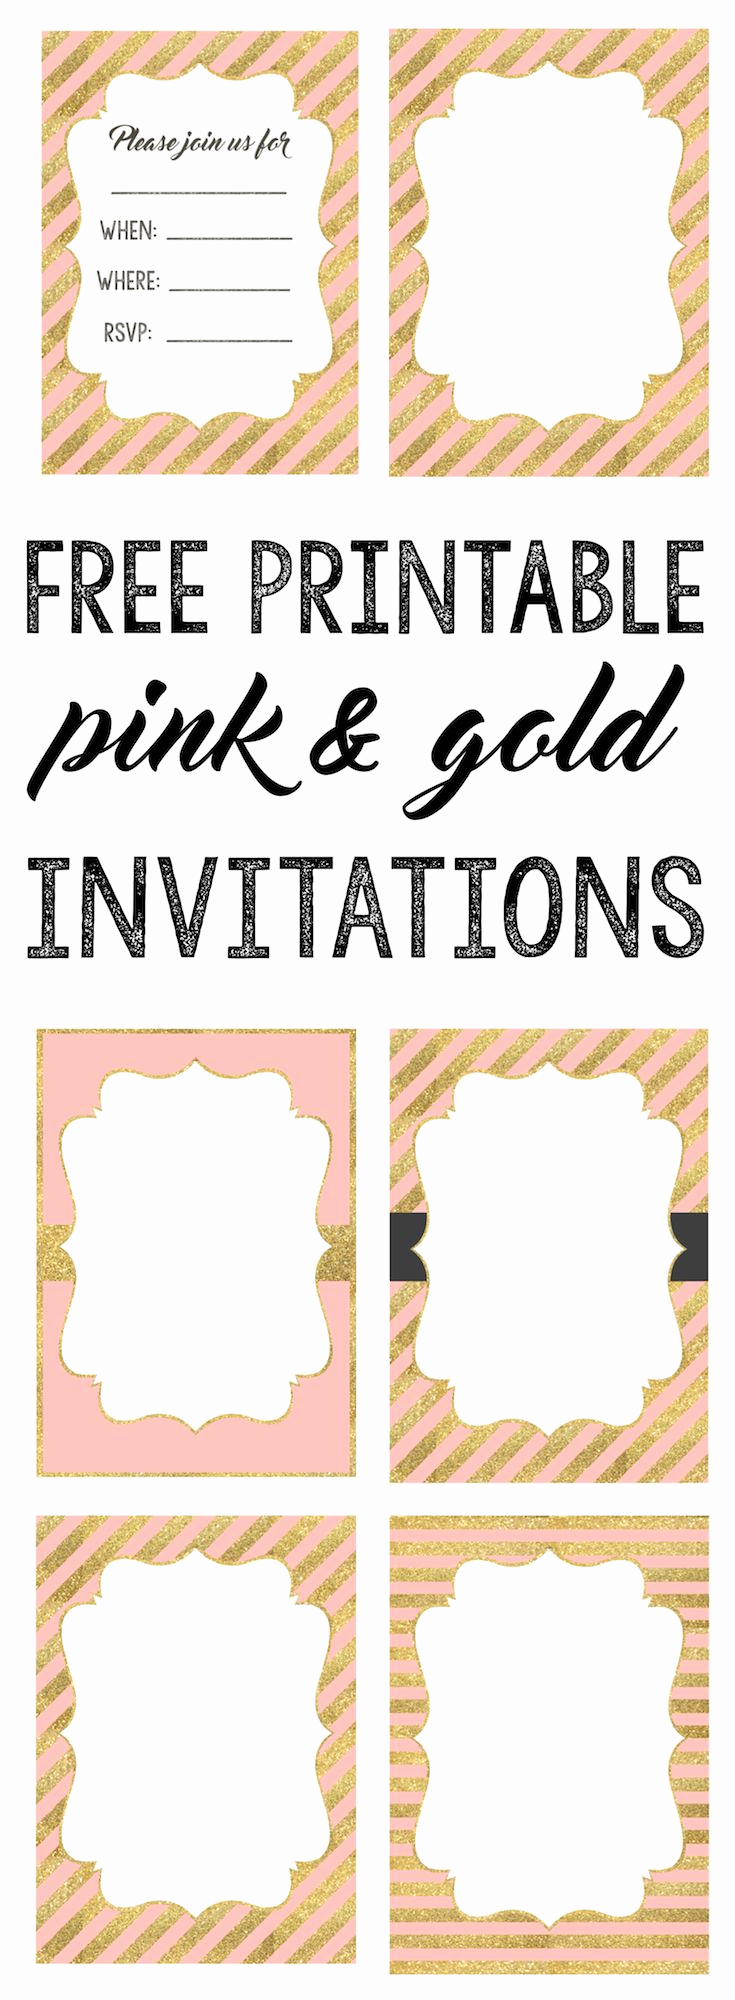 Free Invitation Template Printable Luxury Pink and Gold Invitations Free Printable Baby